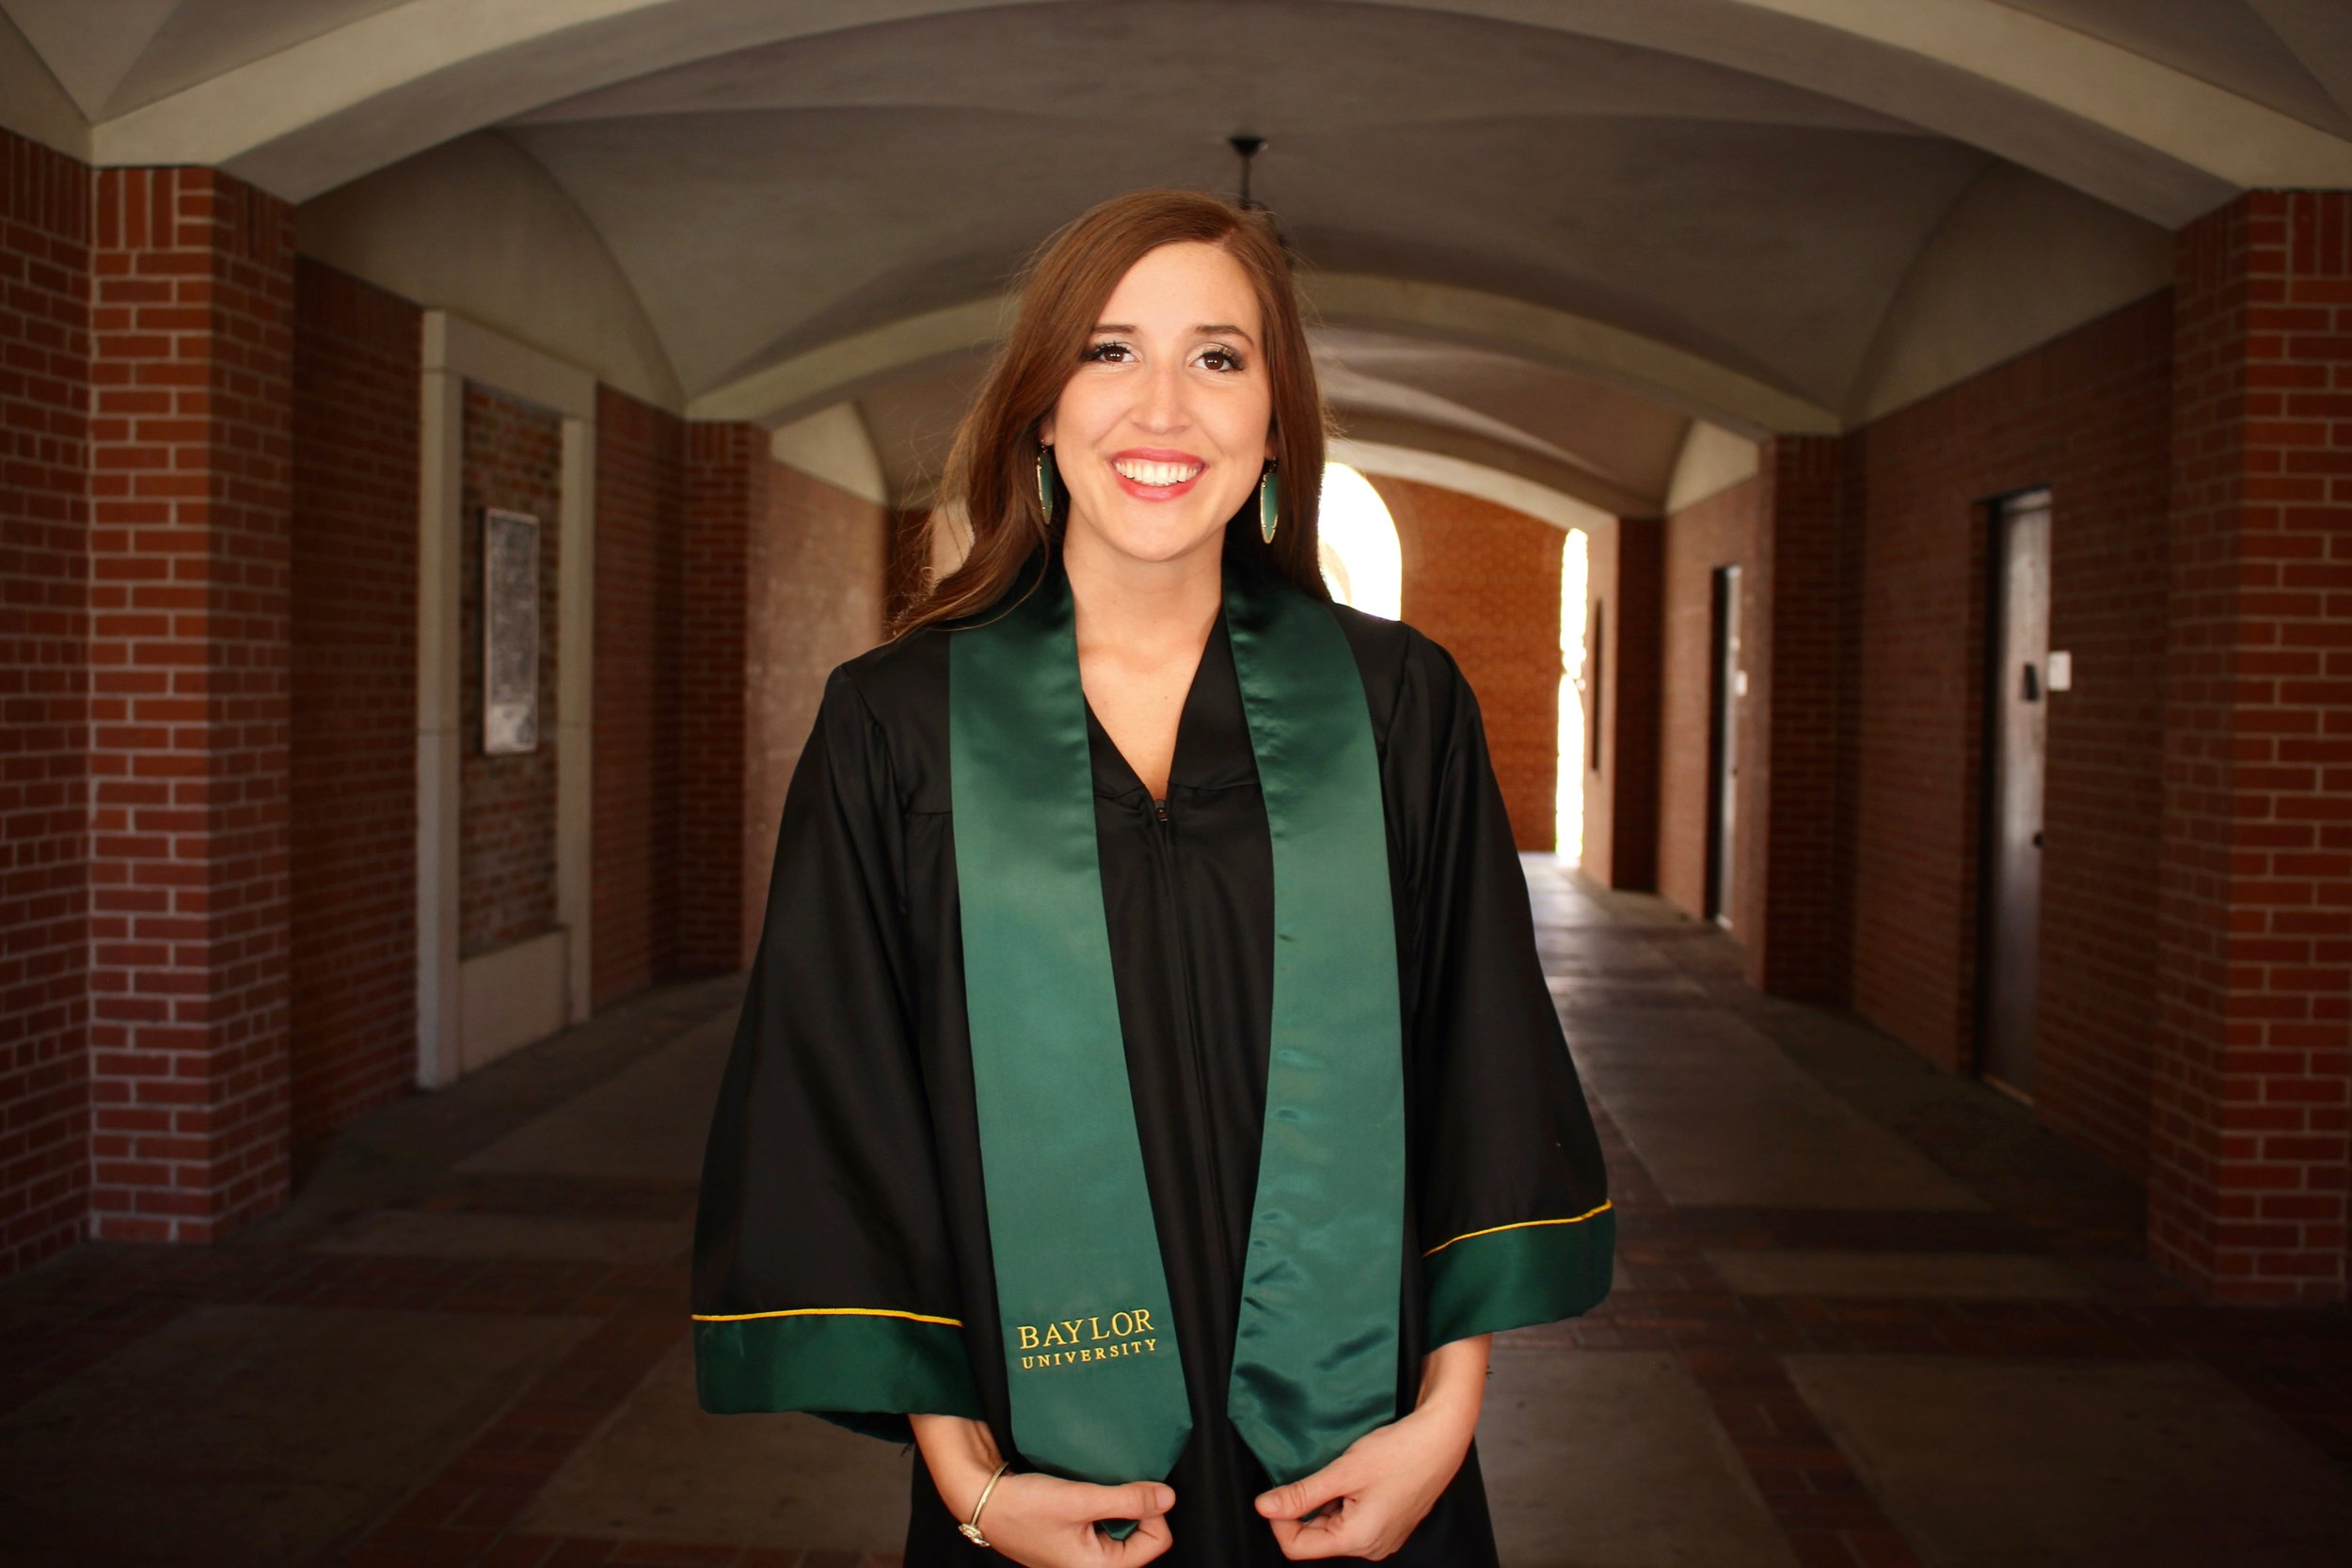 """""""Because of the financial help of Fallen Patriots, I was able to have the most incredible experiences that not only shaped my college career, but also me as a person,"""" Hartwick explained. """"Thanks to their generous contribution, my brother and I can walk away from college debt-free, which is a huge blessing for my mother and our family."""""""